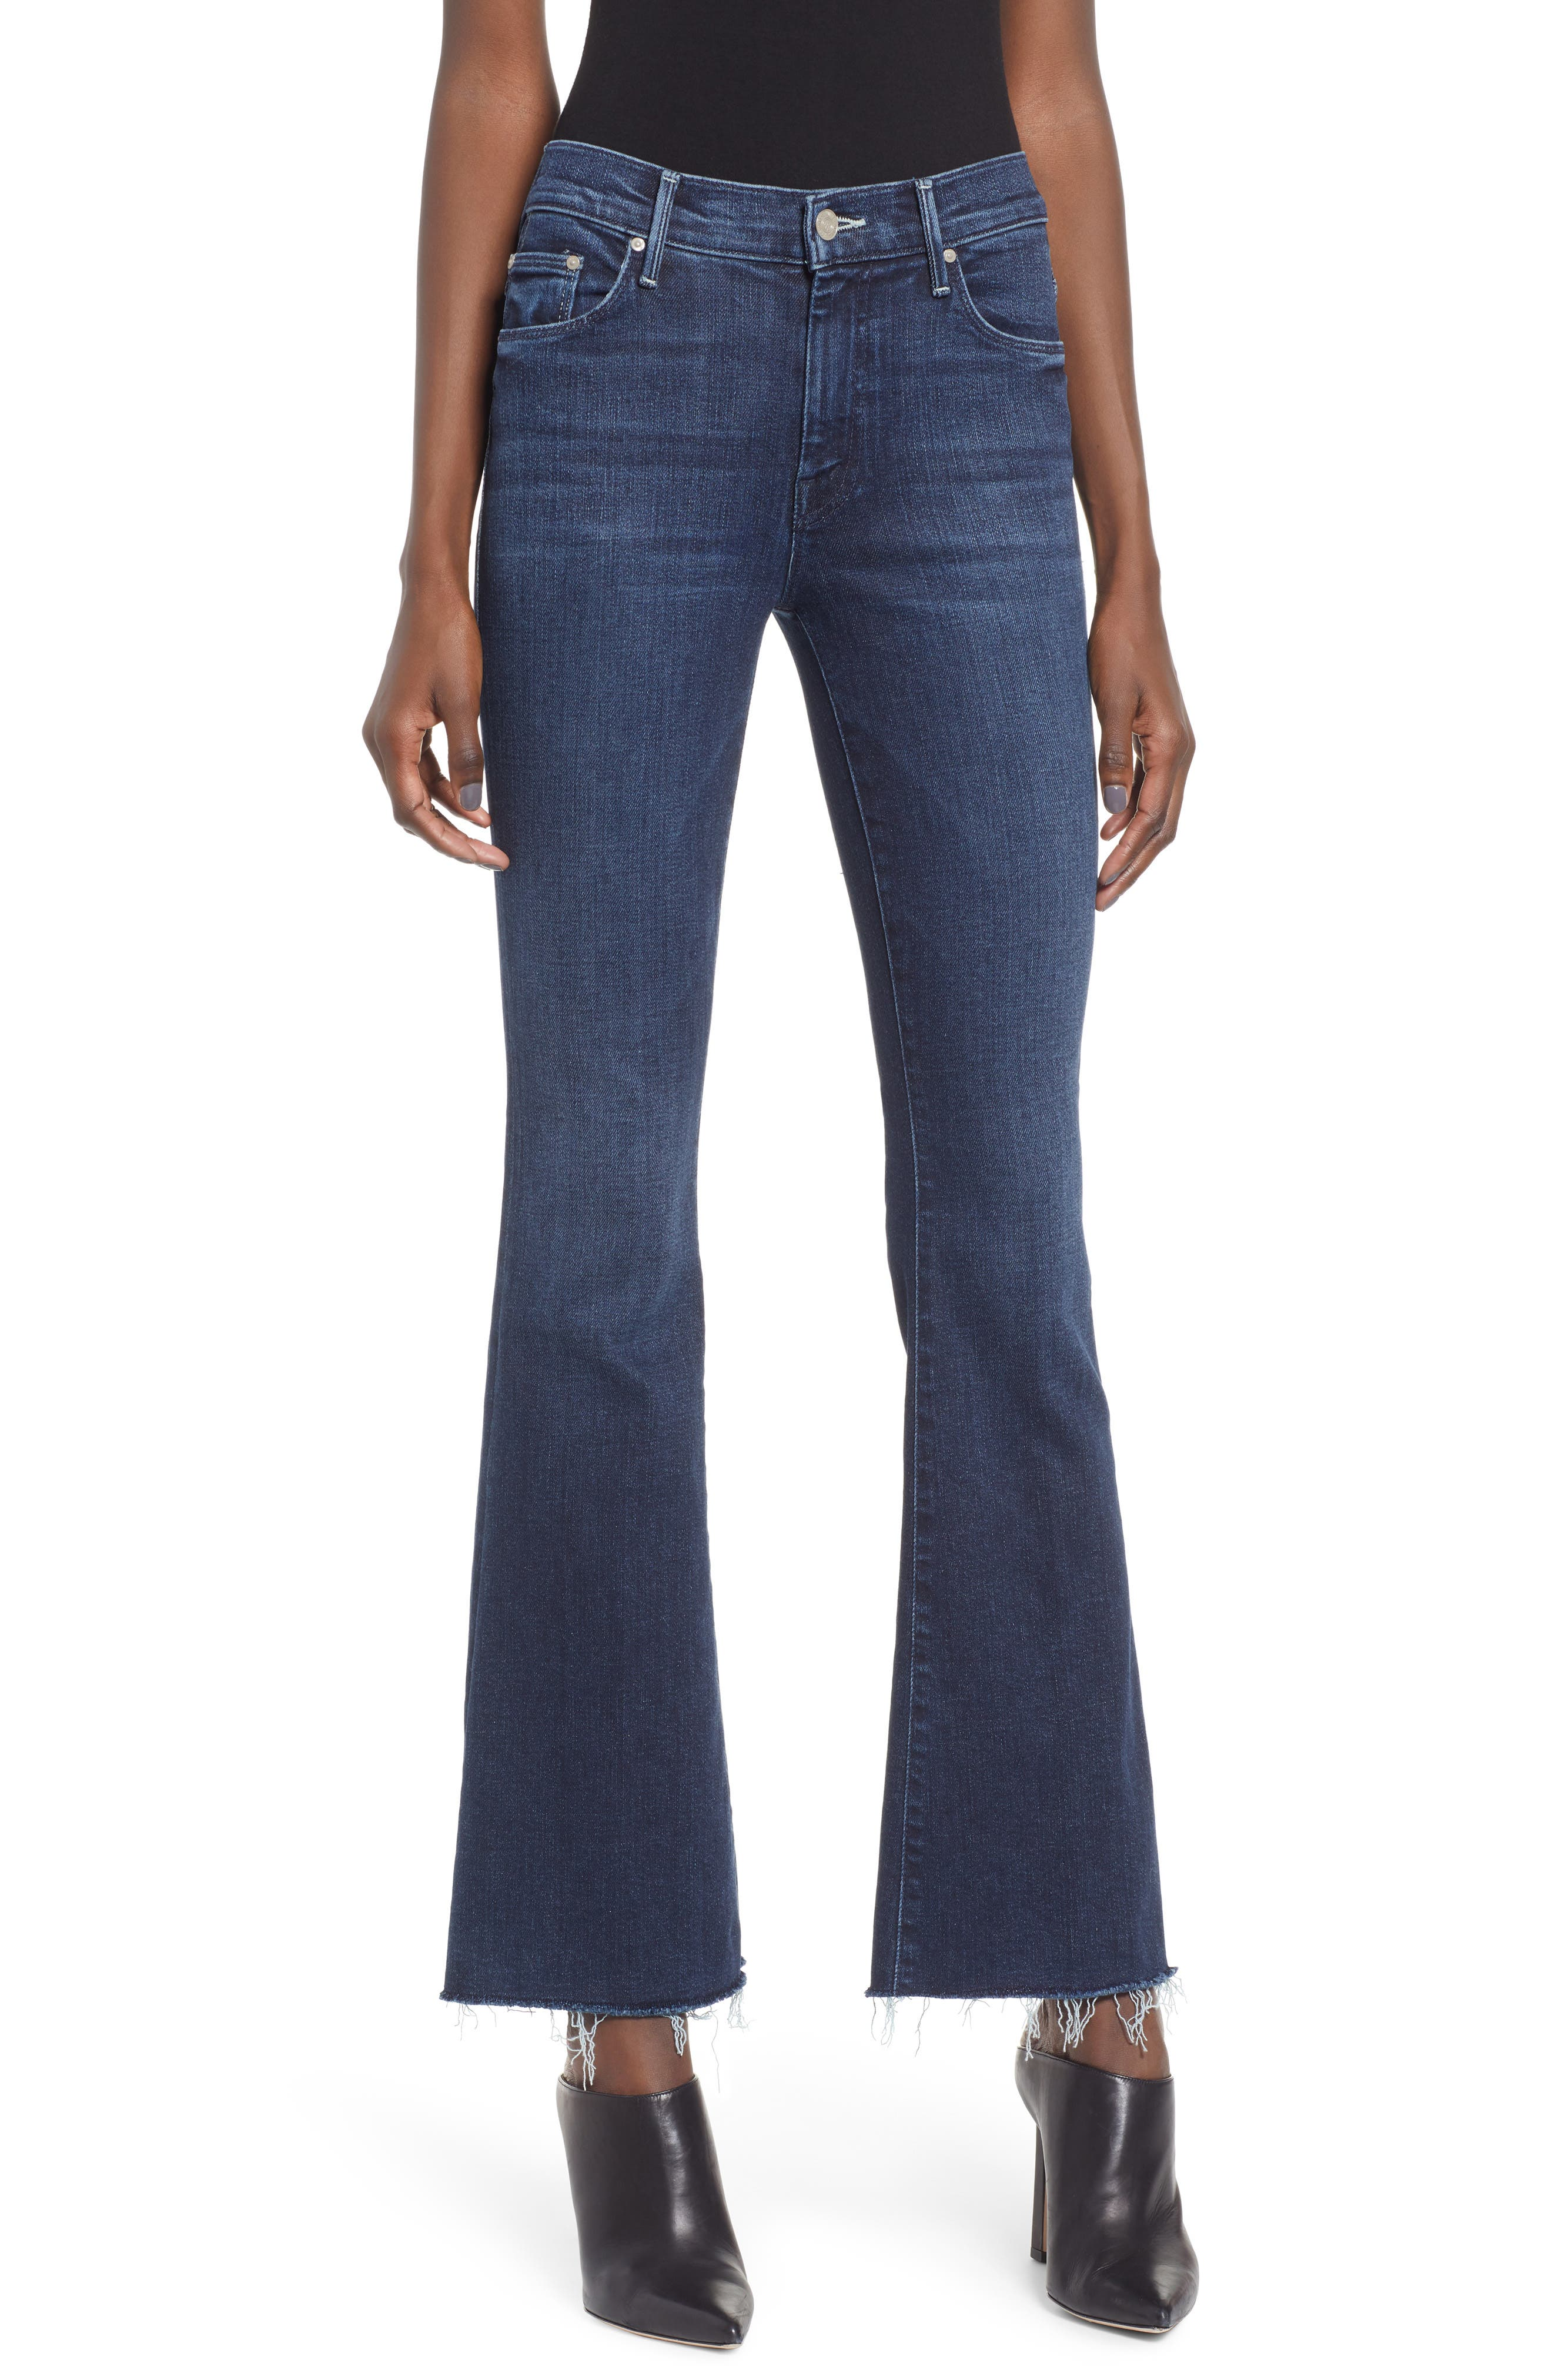 The Weekender Fray Flared Jeans In Disco Doll in Disco Dolls